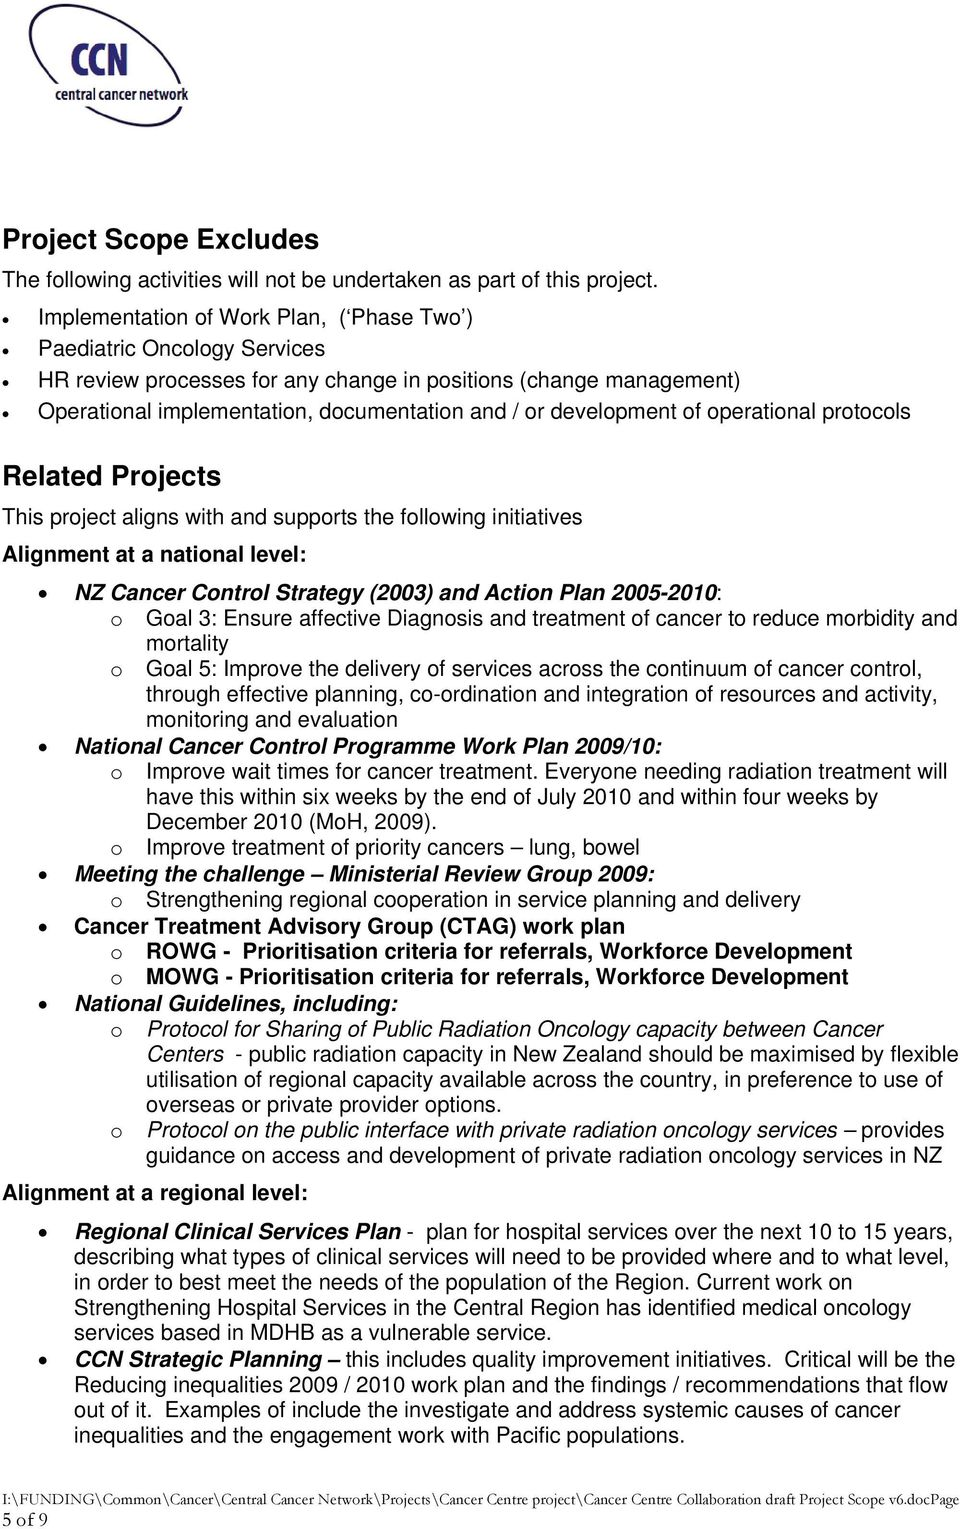 development of operational protocols Related Projects This project aligns with and supports the following initiatives Alignment at a national level: NZ Cancer Control Strategy (2003) and Action Plan